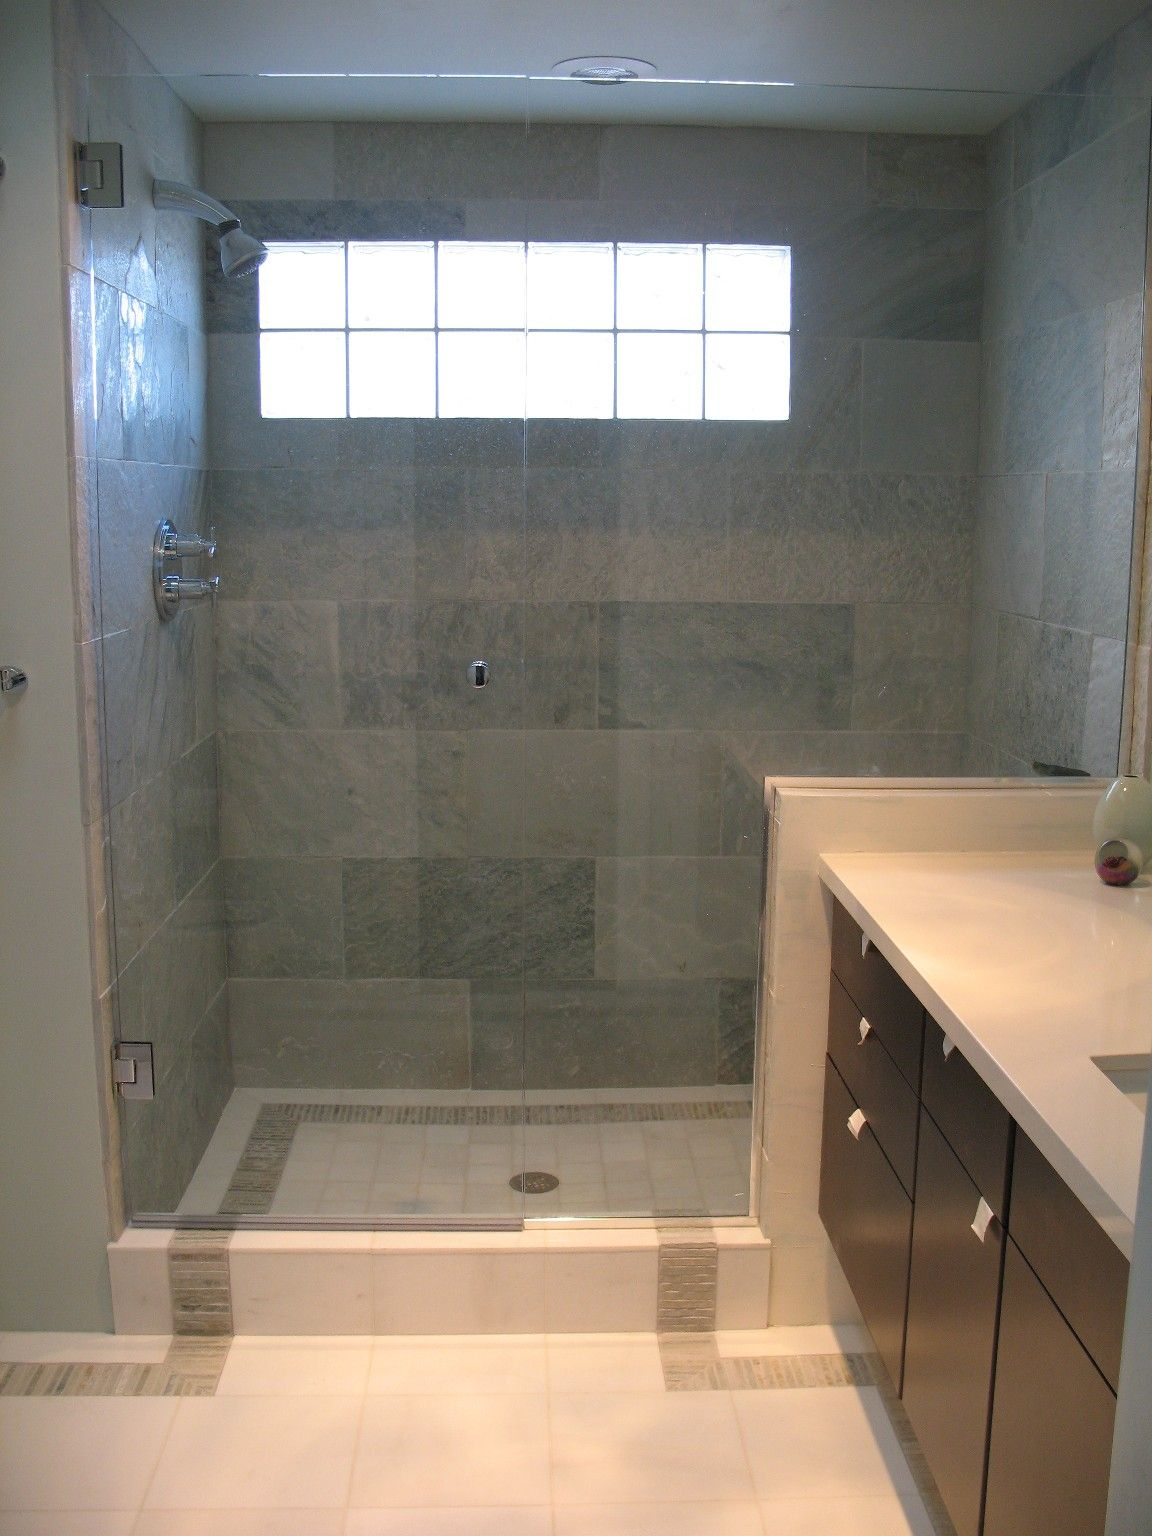 17 best images about bathroom and shower on pinterest | travertine